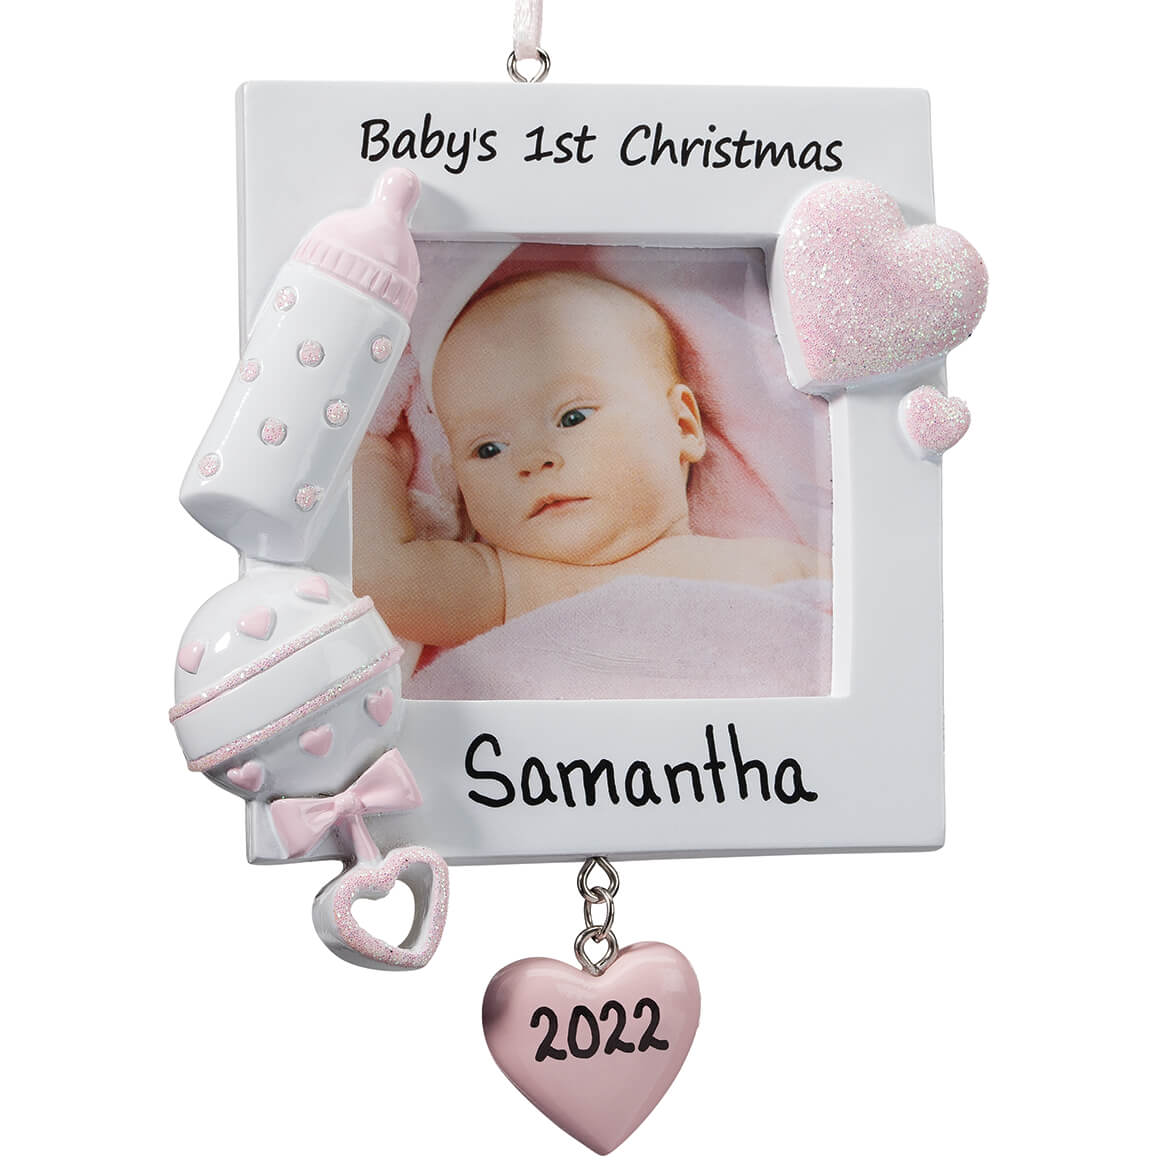 Personalized Baby's First Christmas Frame Ornament-365727